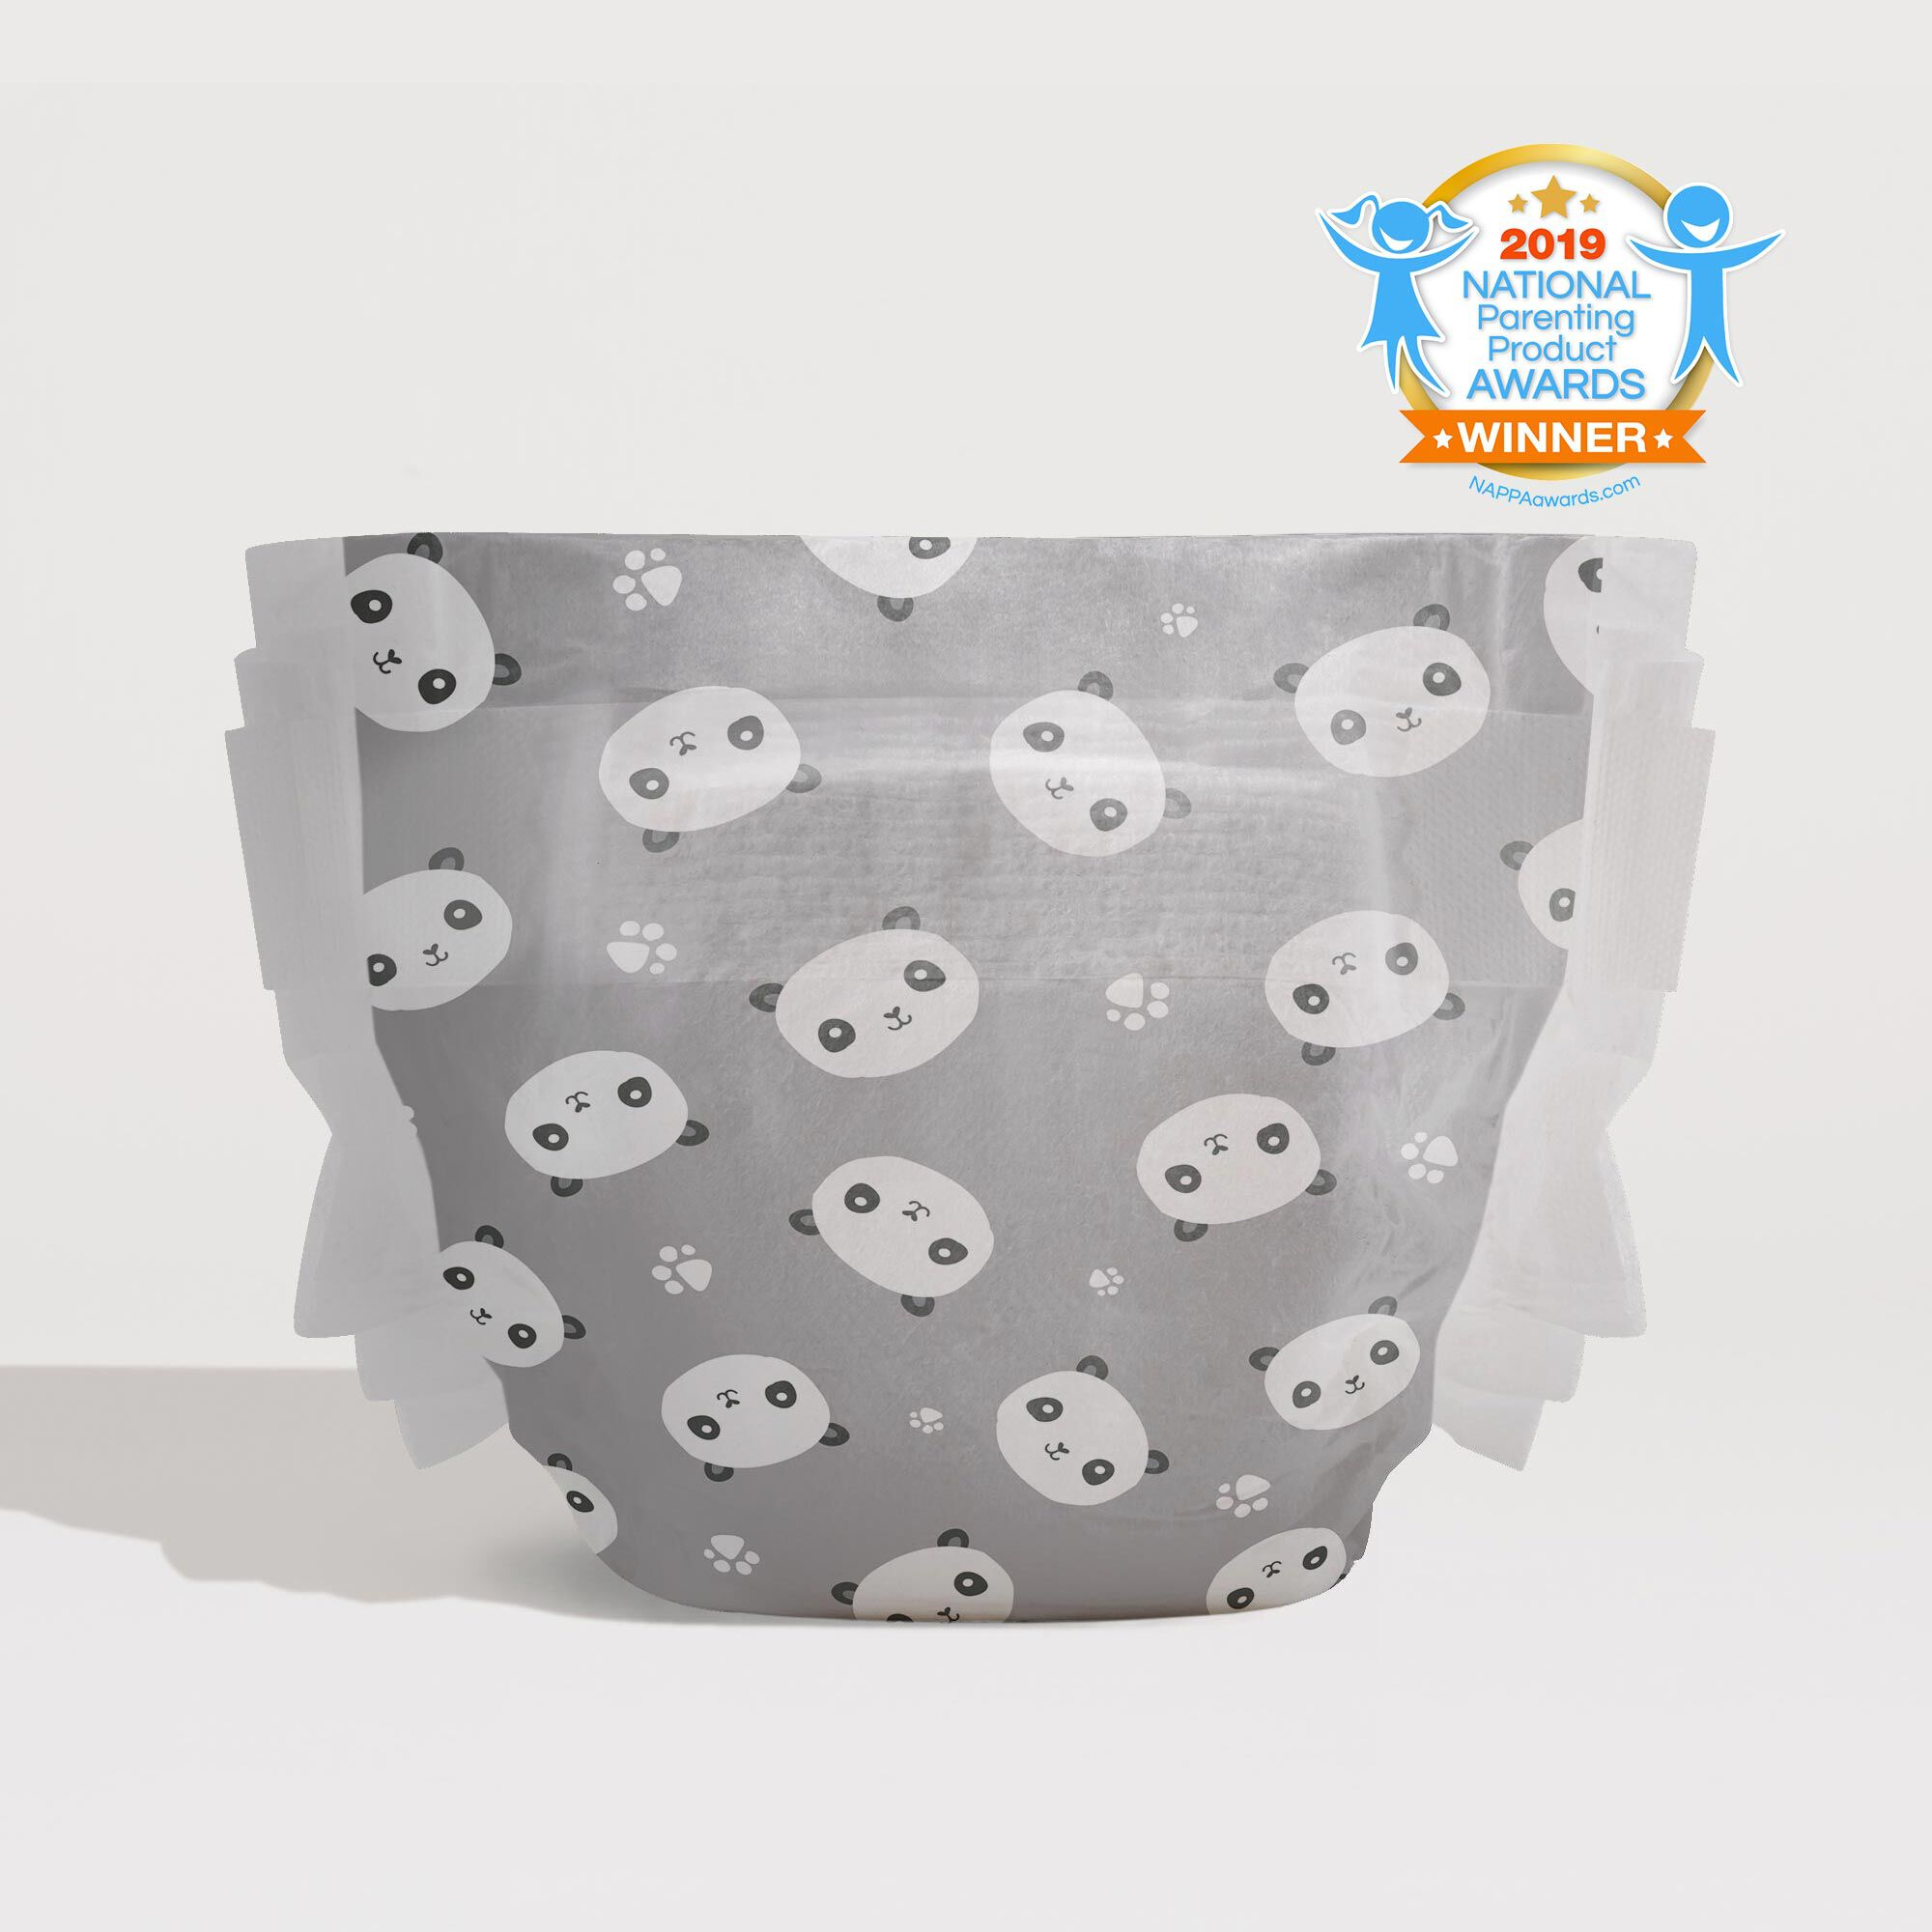 honest diaper with 2019 national parenting product award seal